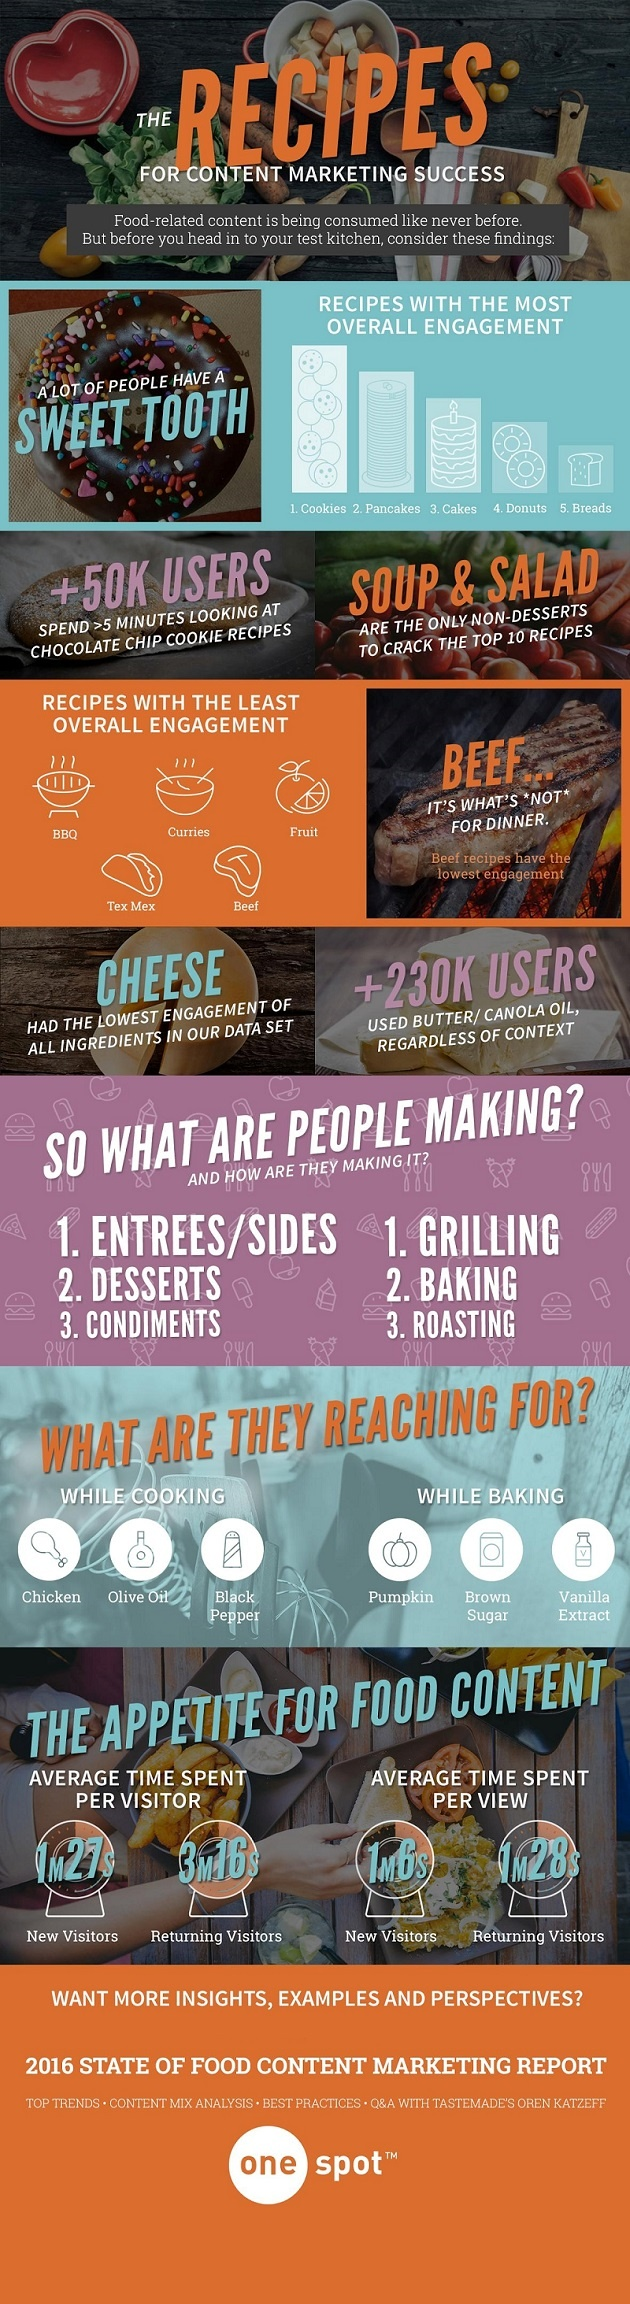 Infographic The Recipes for Content Marketing Success